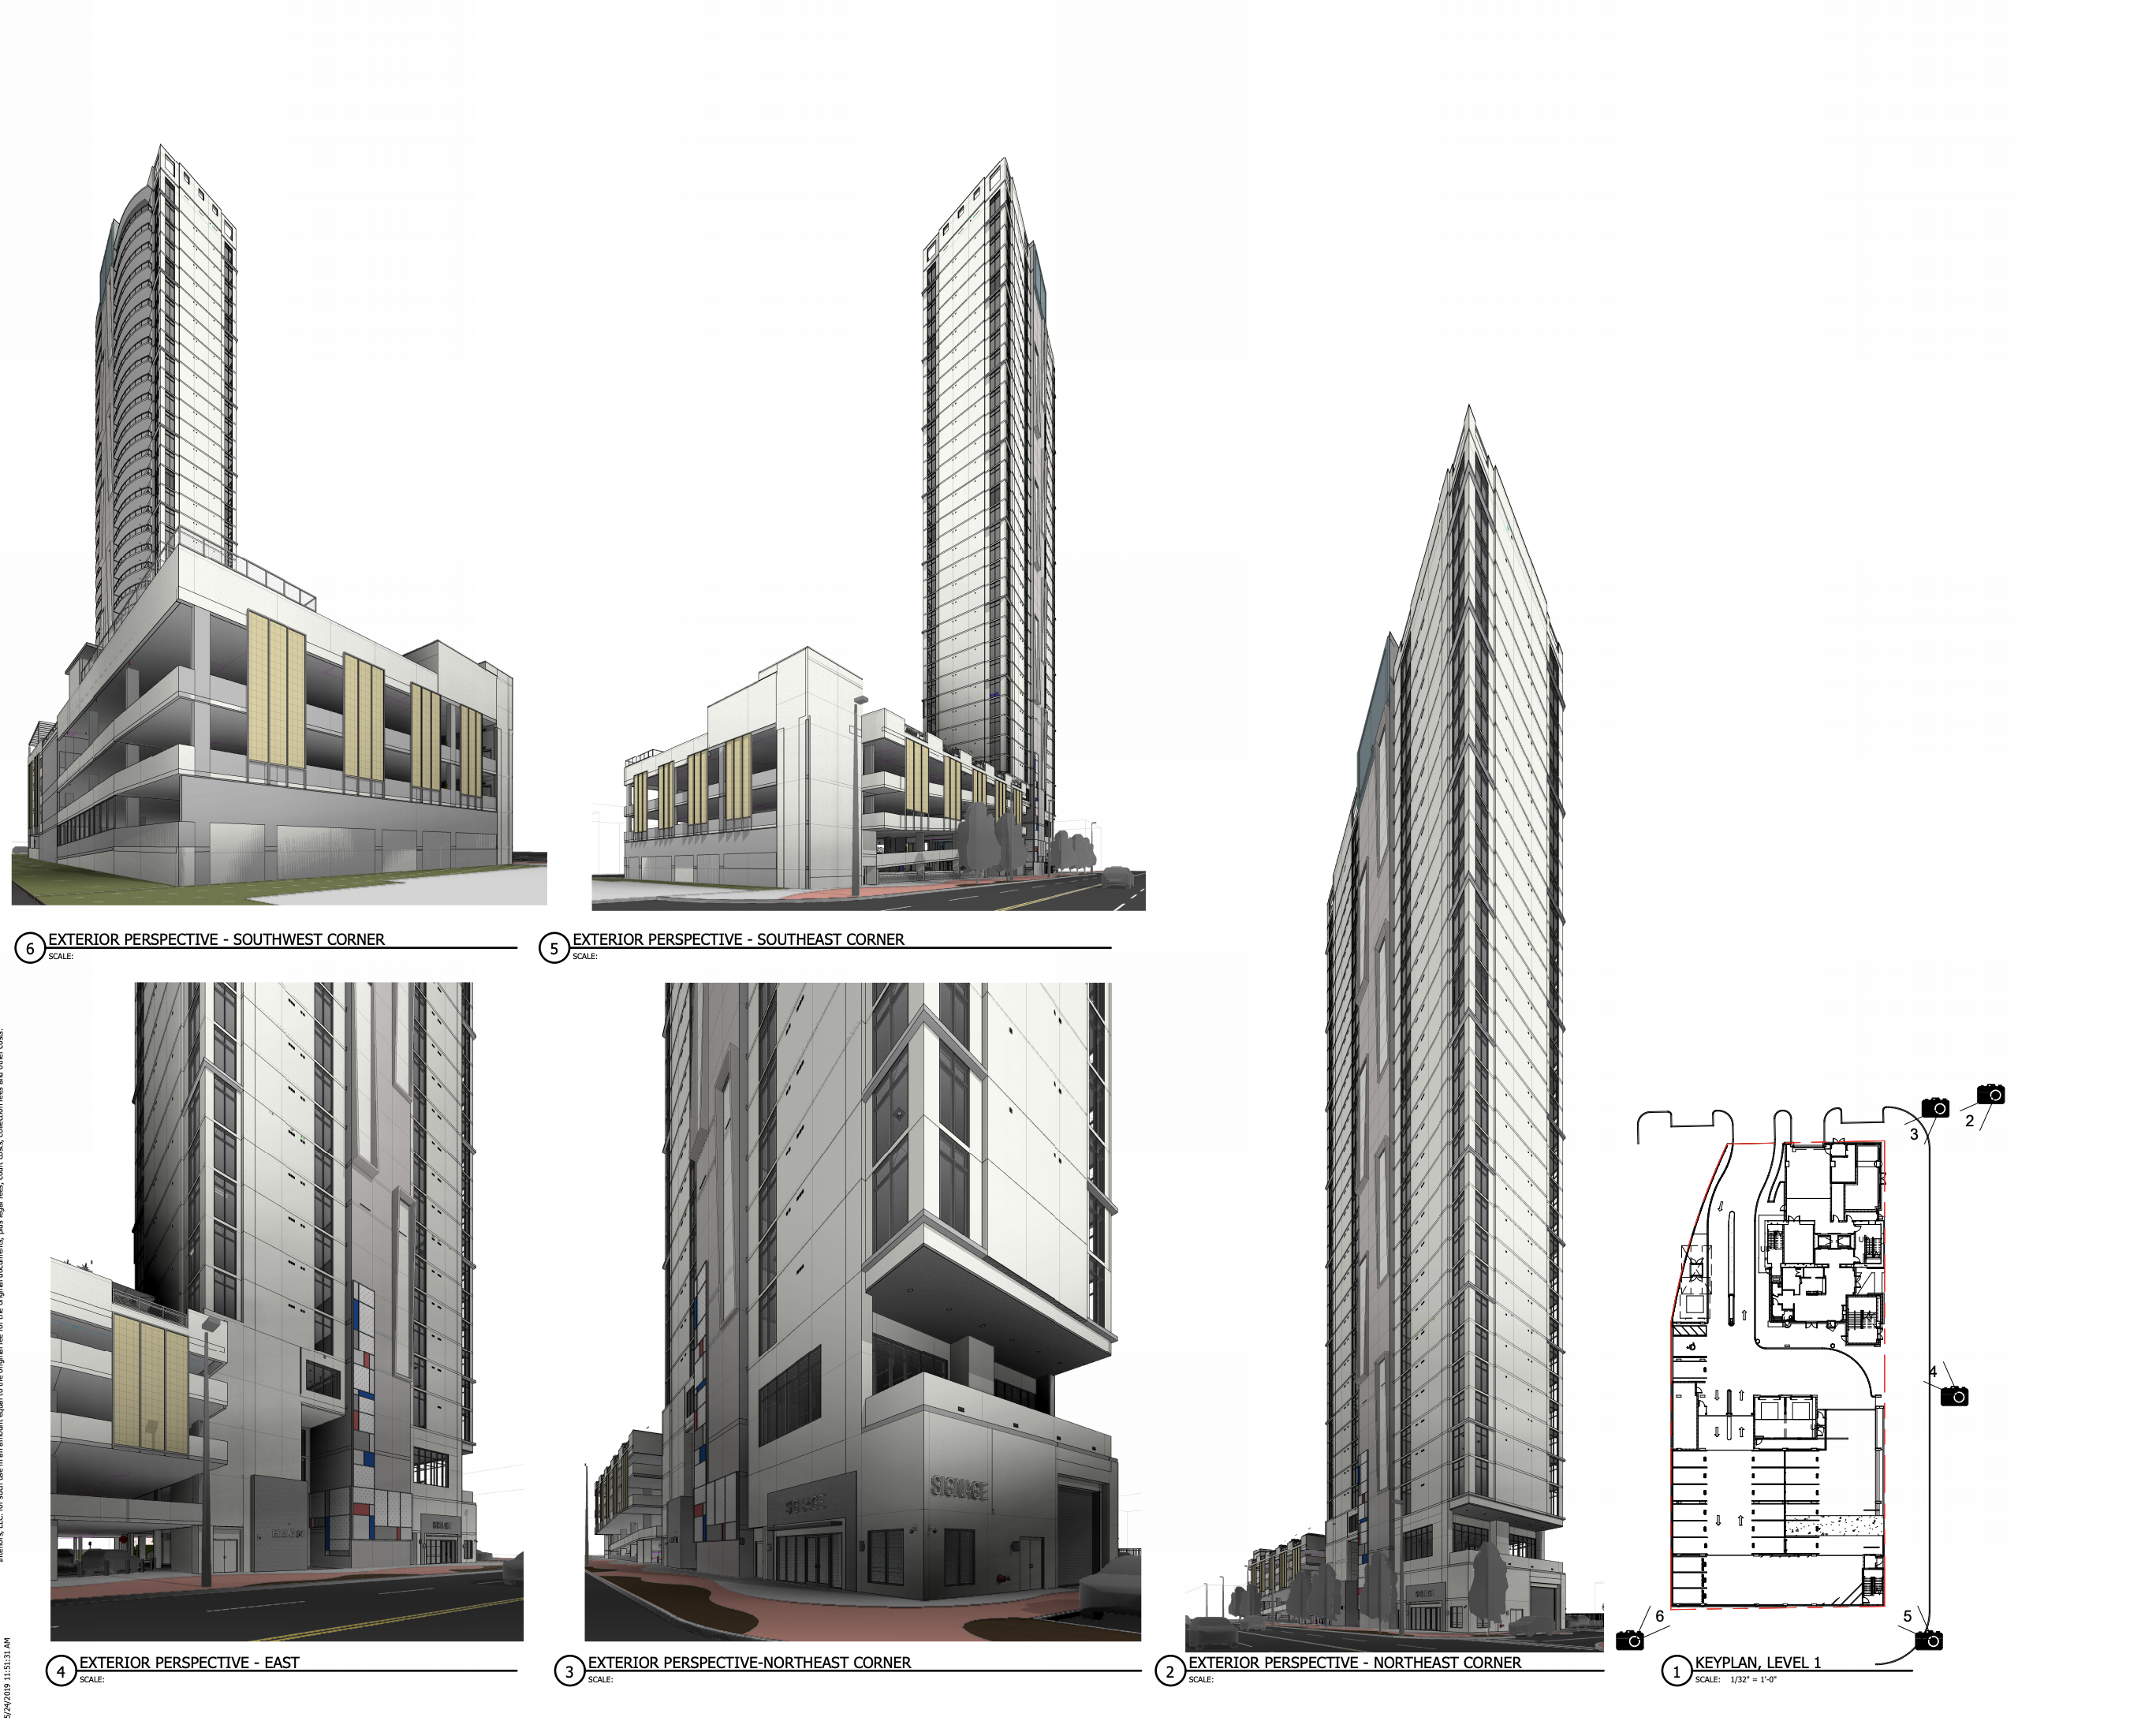 The 35 Story Elevé 61 Condo Tower Awaiting To Rise At 858 Channelside Drive In Tampa Florida Yimby